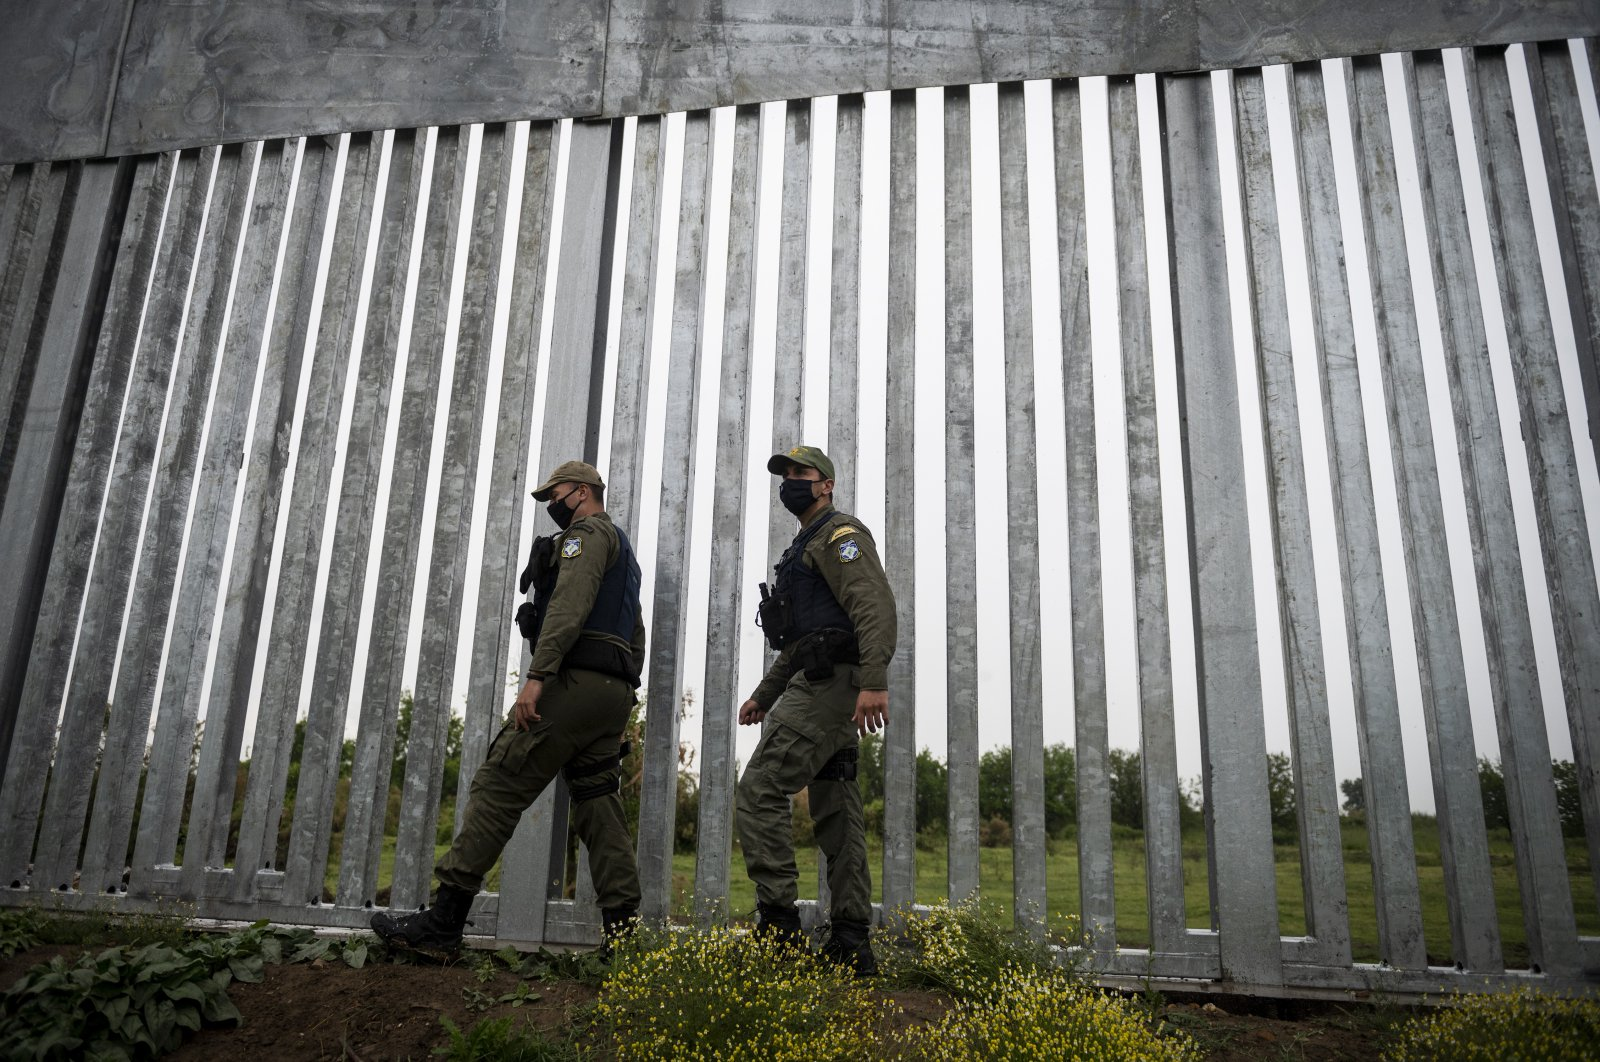 Police officers patrol alongside a steel wall at Evros river, near the village of Poros, at the Greek -Turkish border, Greece, Friday, May 21, 2021. (AP Photo)